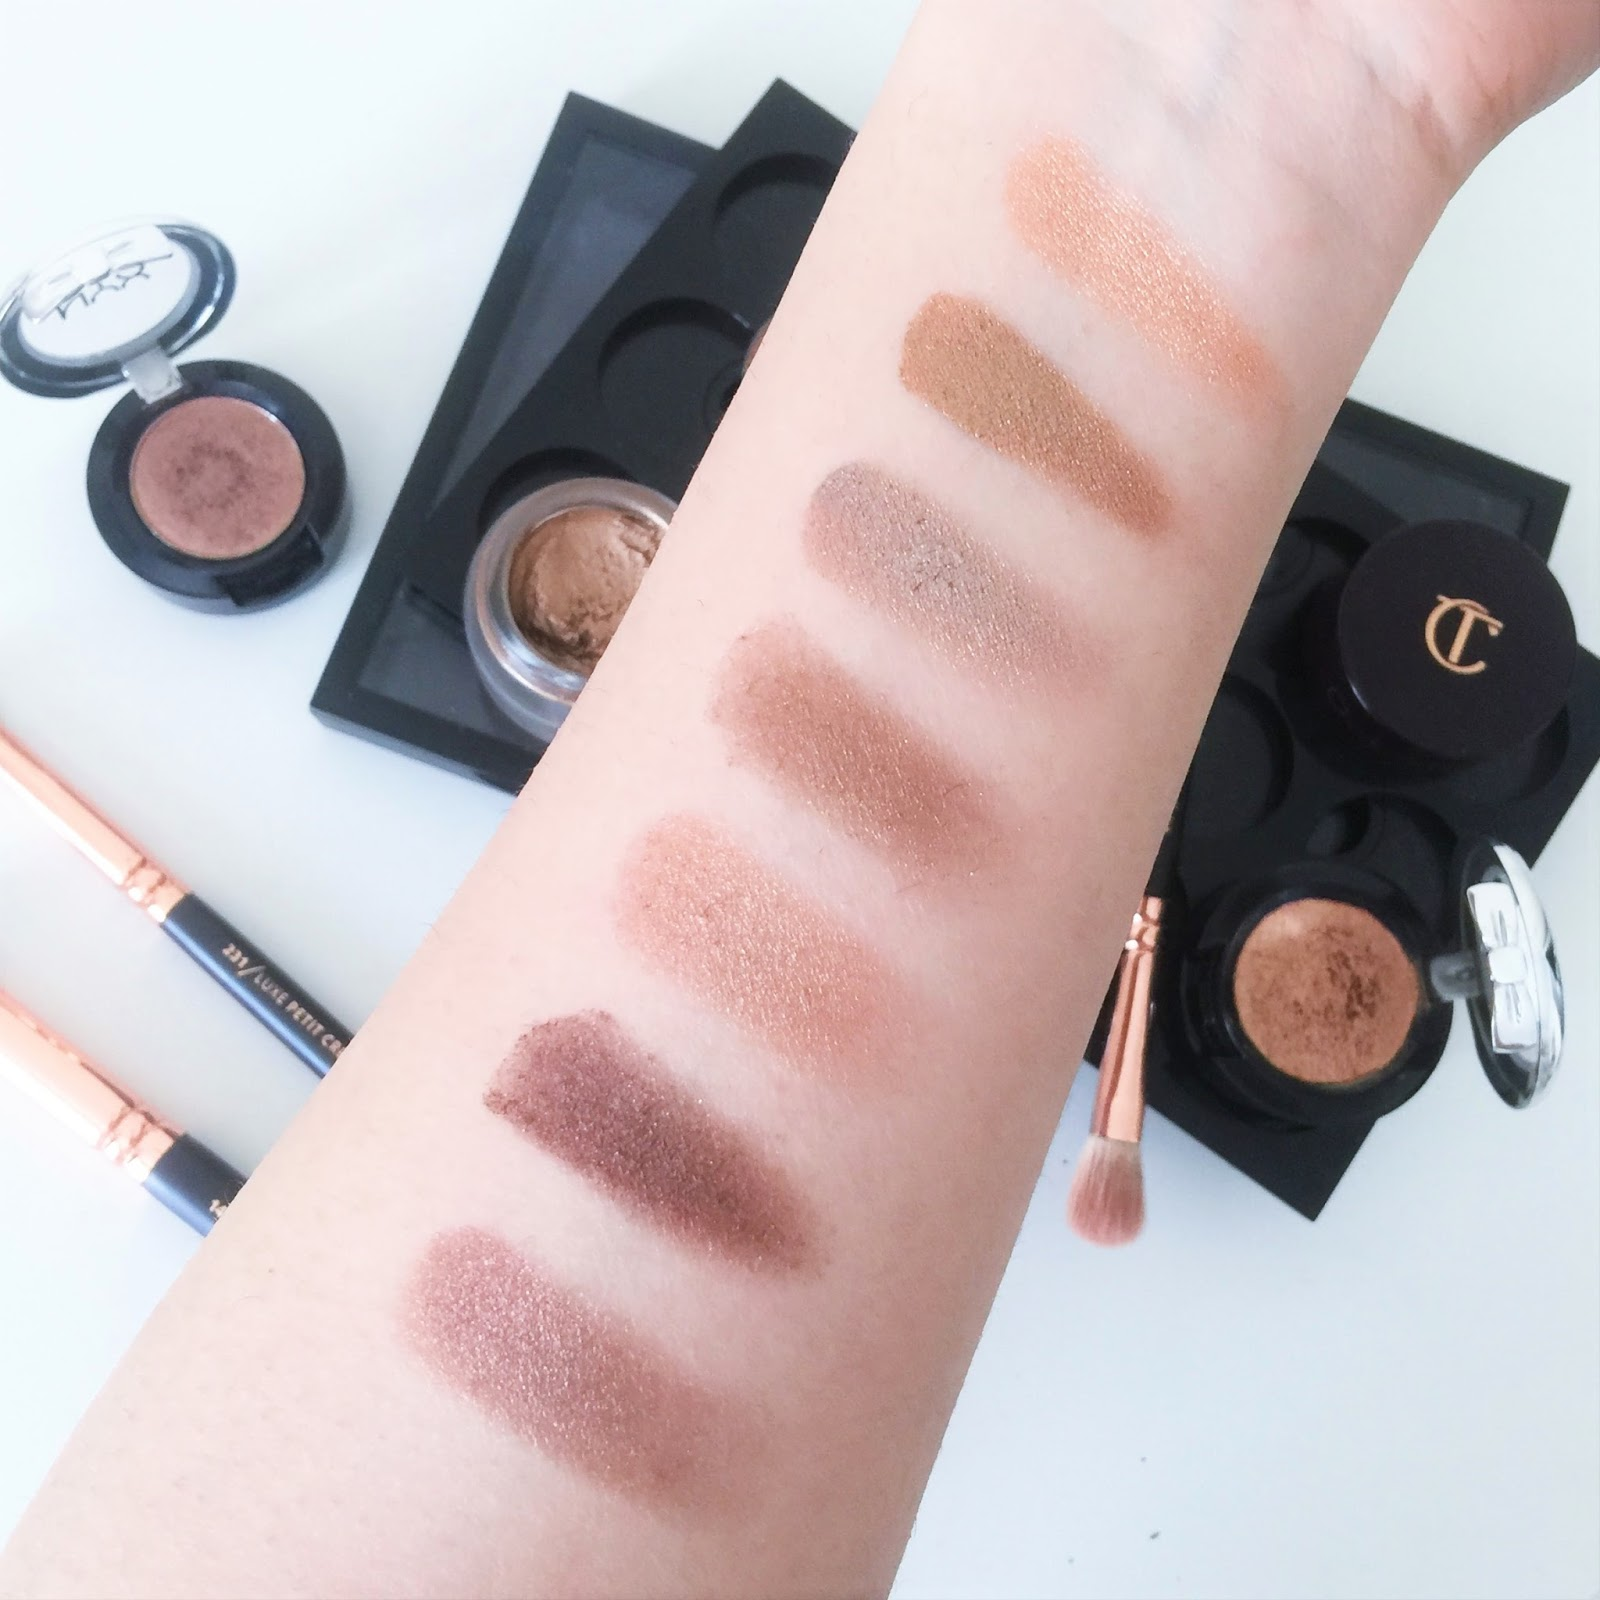 From L R Nyx Bedroom Eyes Mac Mulch Tempting Woodwinked Maybelline On Bronze Charlotte Tilbury To Mesmerise In Bette And Liquid